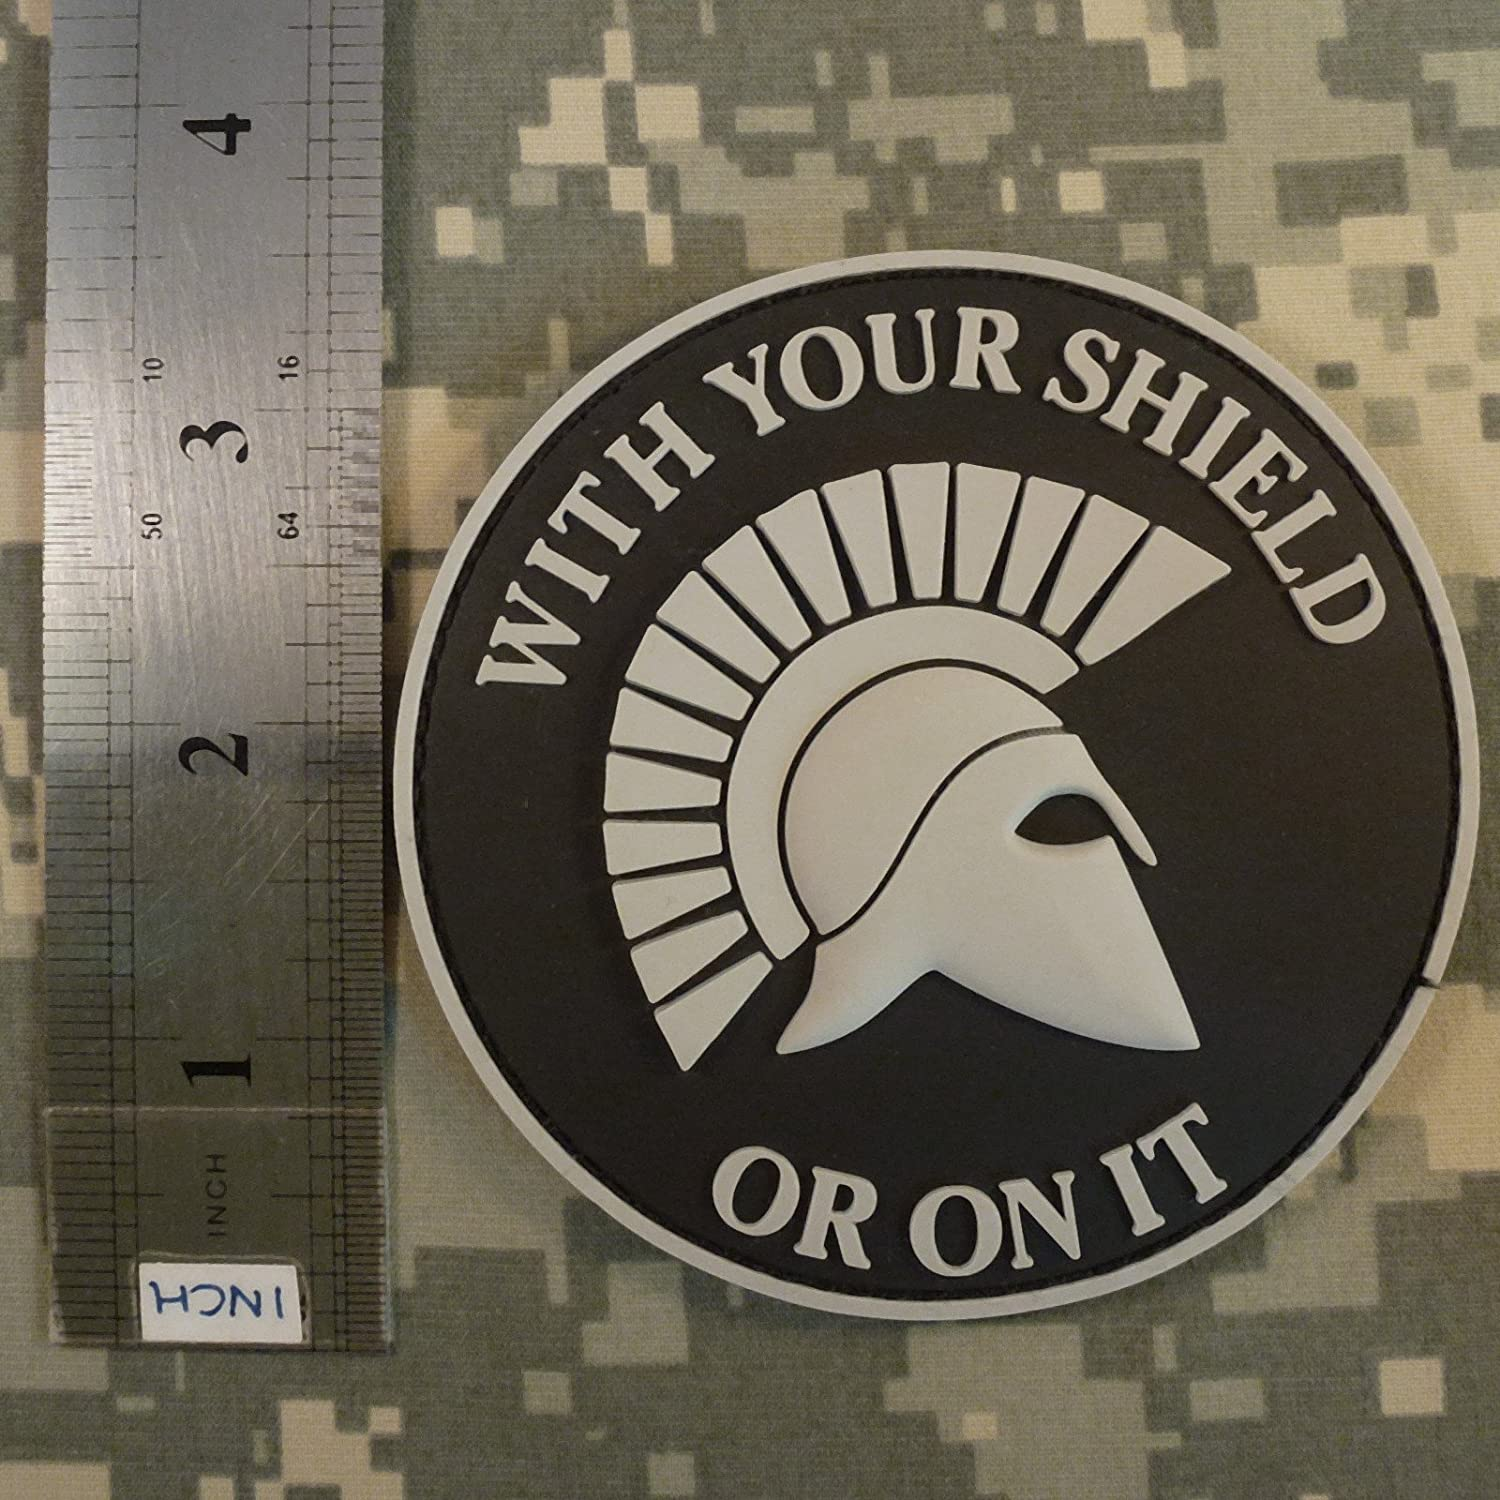 2AFTER1 WITH YOUR SHIELD OR ON IT Spartan Helmet Morale US Navy Seals PVC Rubber Touch Fastener Patch